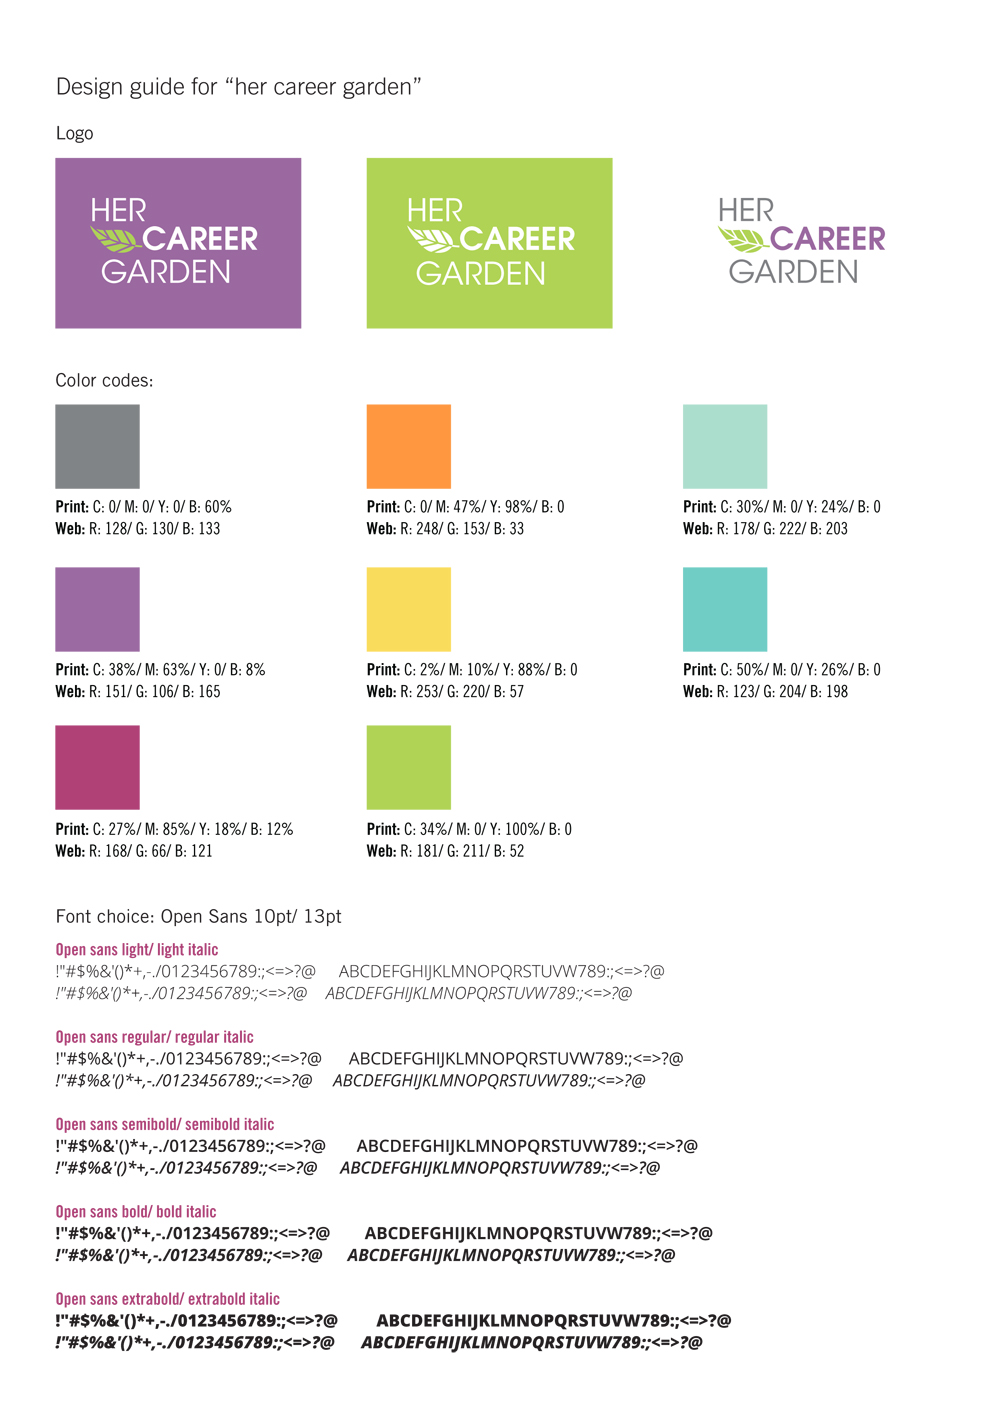 Her Career Garden_Design guide_web-1.jpg